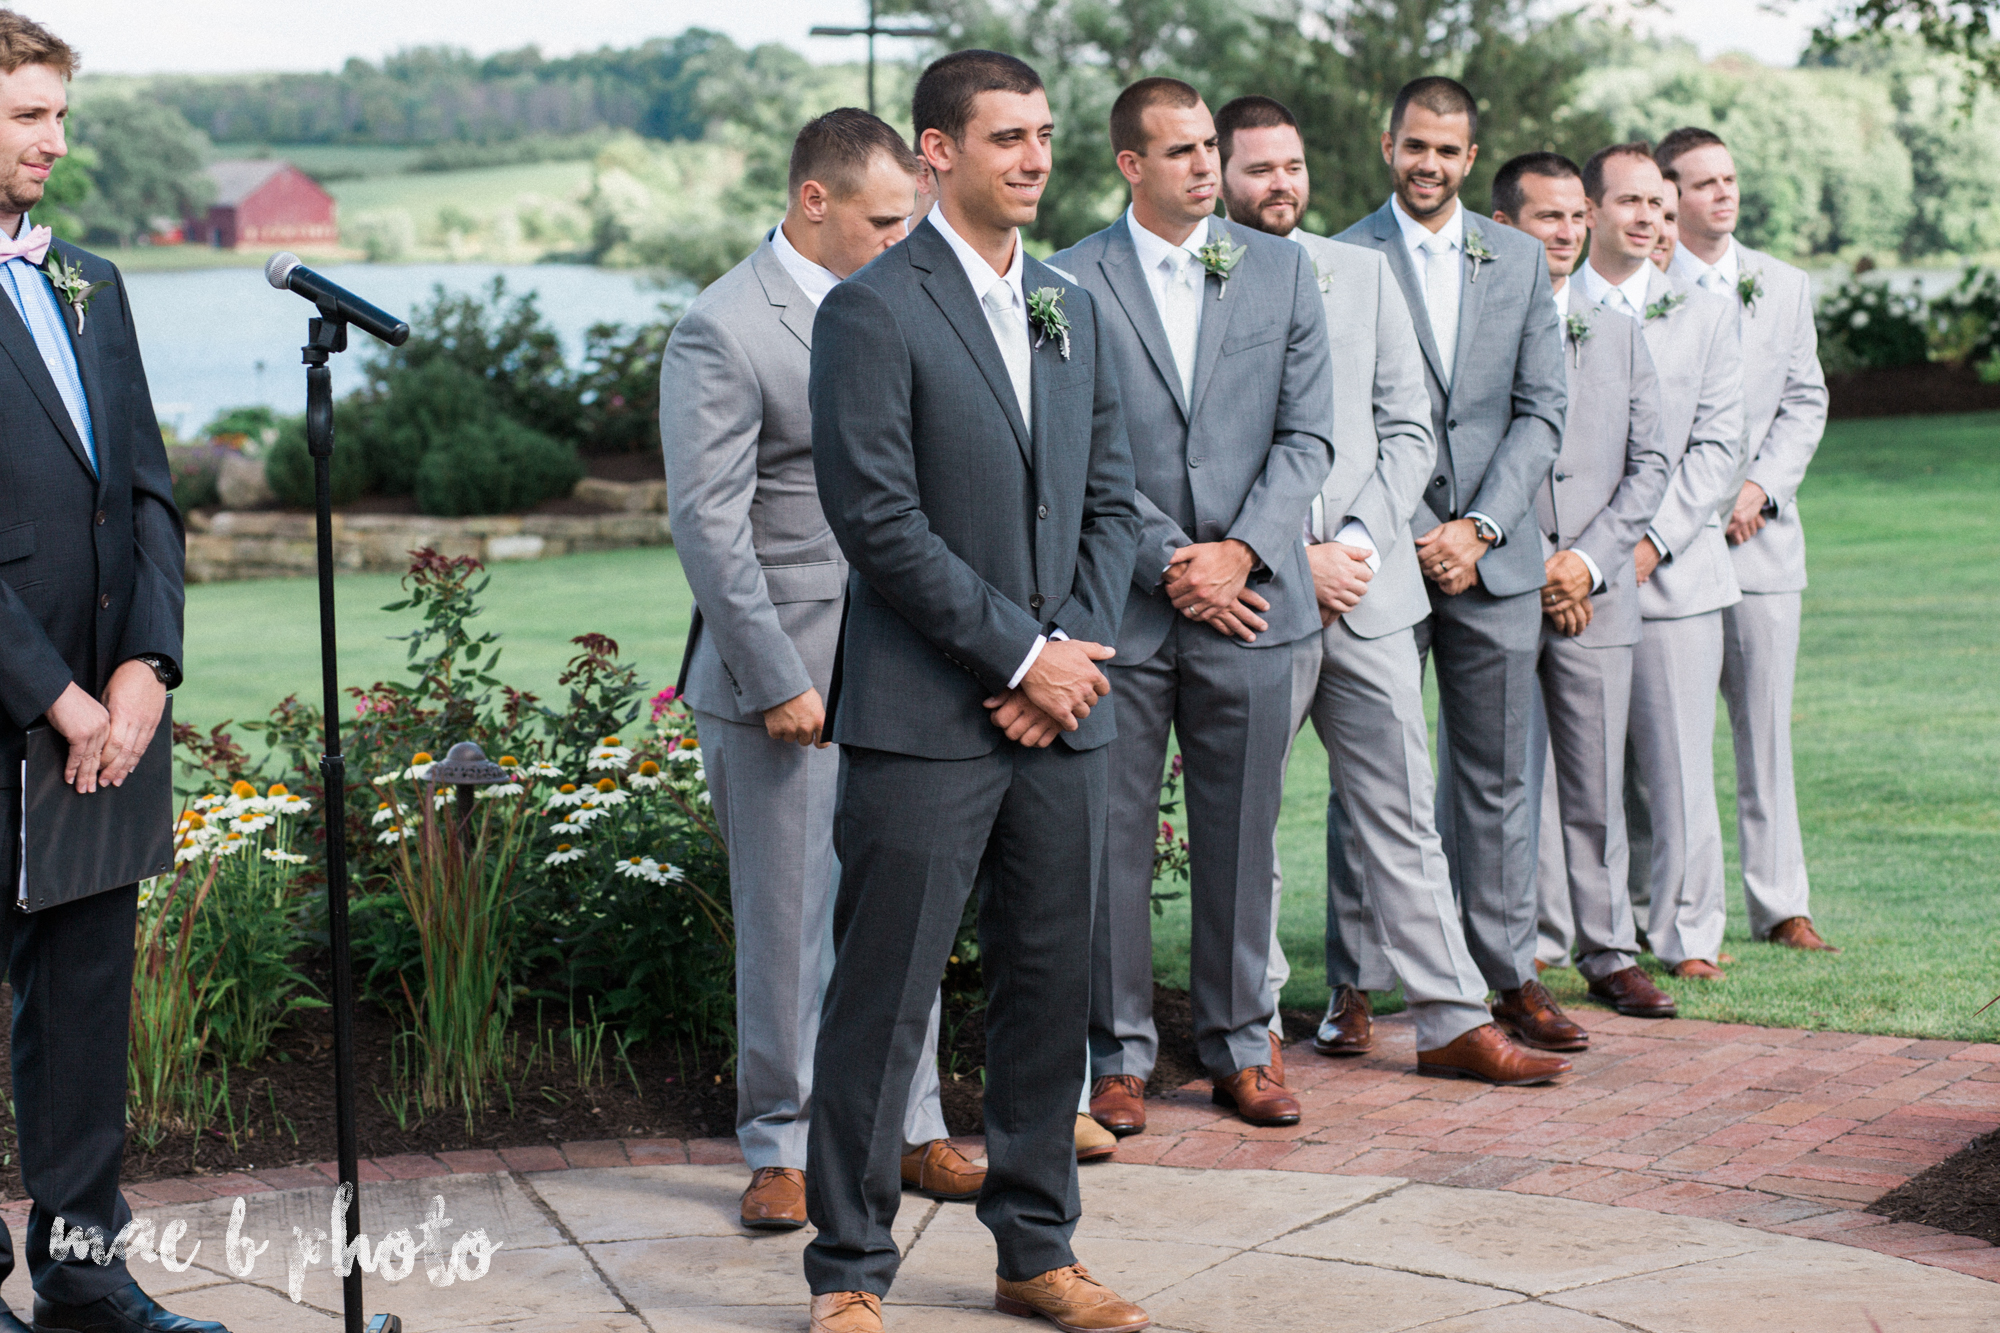 emily and michael's industrial chic summer country club wedding at the lake club in poland ohio photographed by cleveland wedding photographer mae b photo-18.jpg